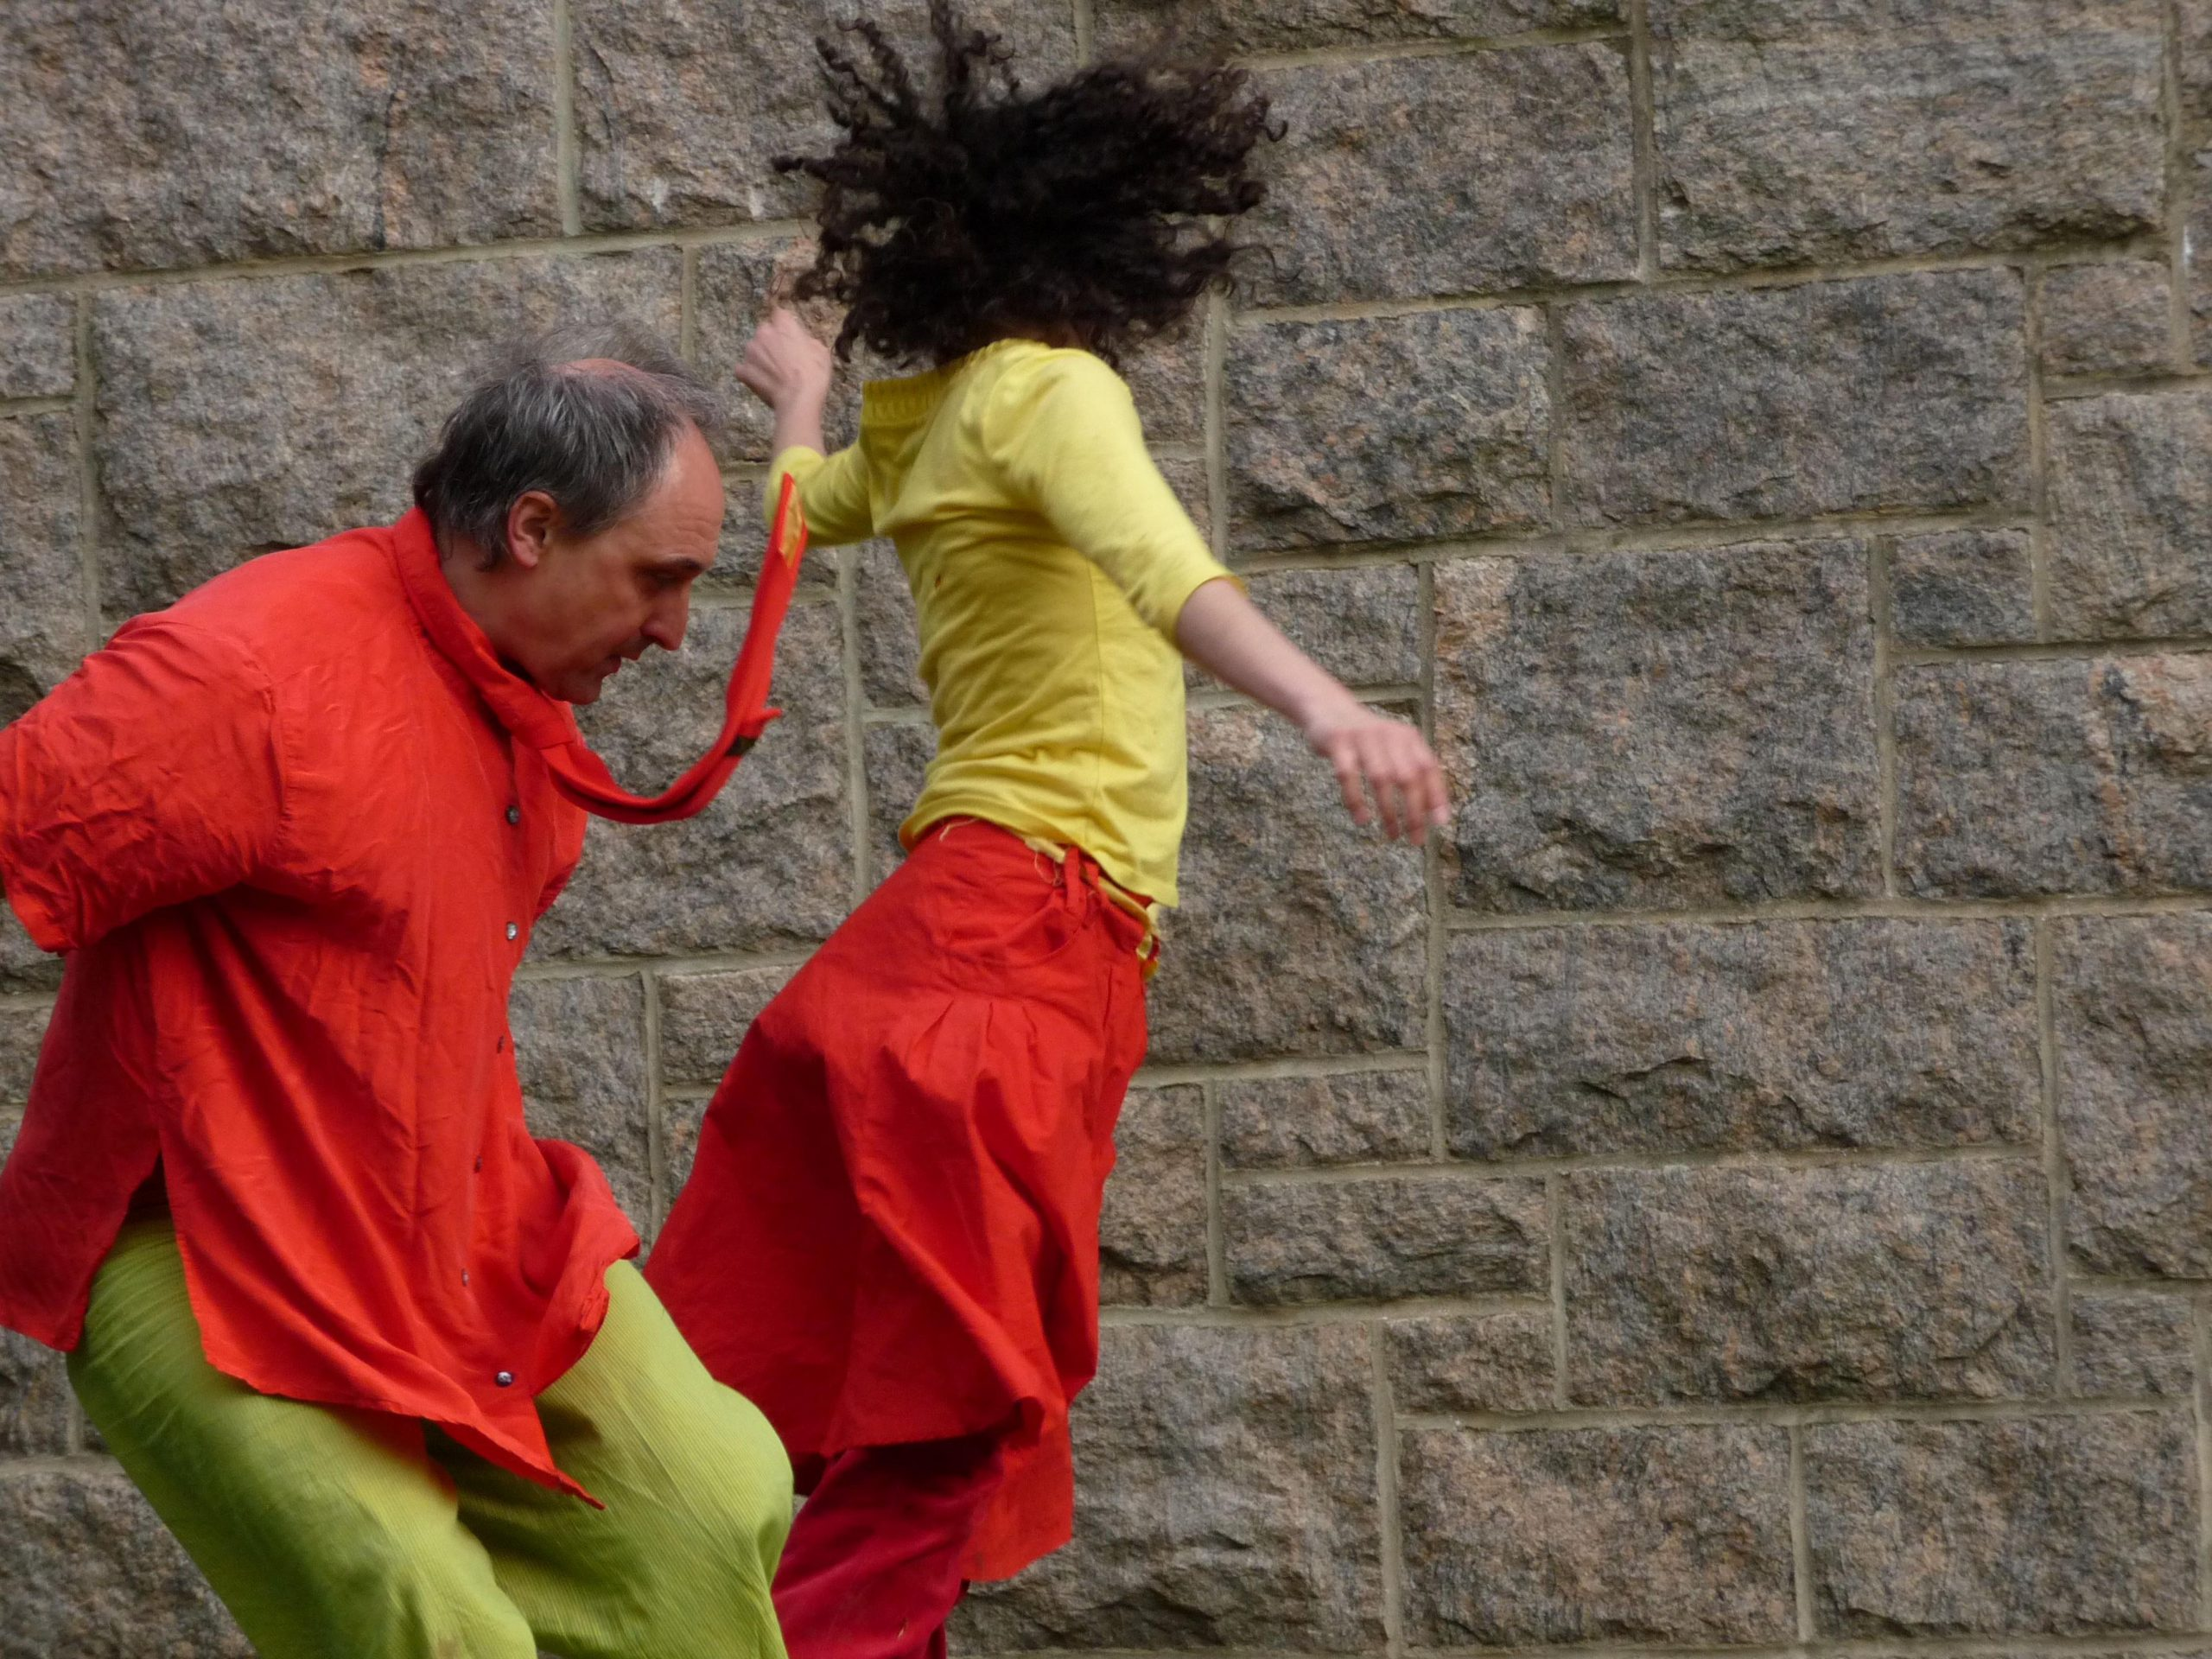 Two people dance before a stone wall, a man in red shirt and green pants falls back and a woman in yellow shirt and red skirt jumps forwards, looking away.